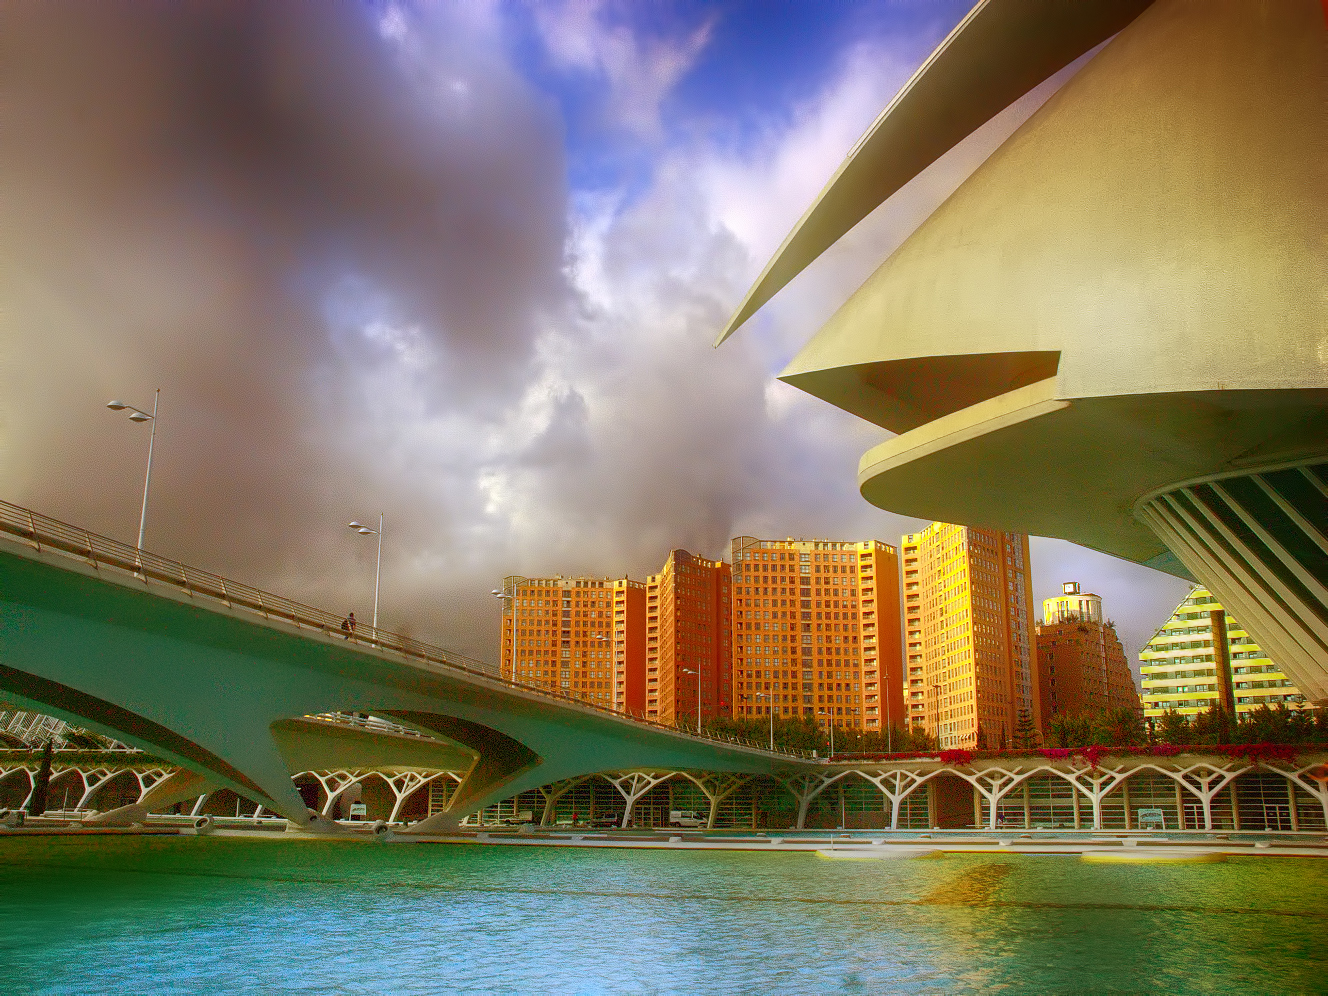 City of Arts and Sciences (IV)